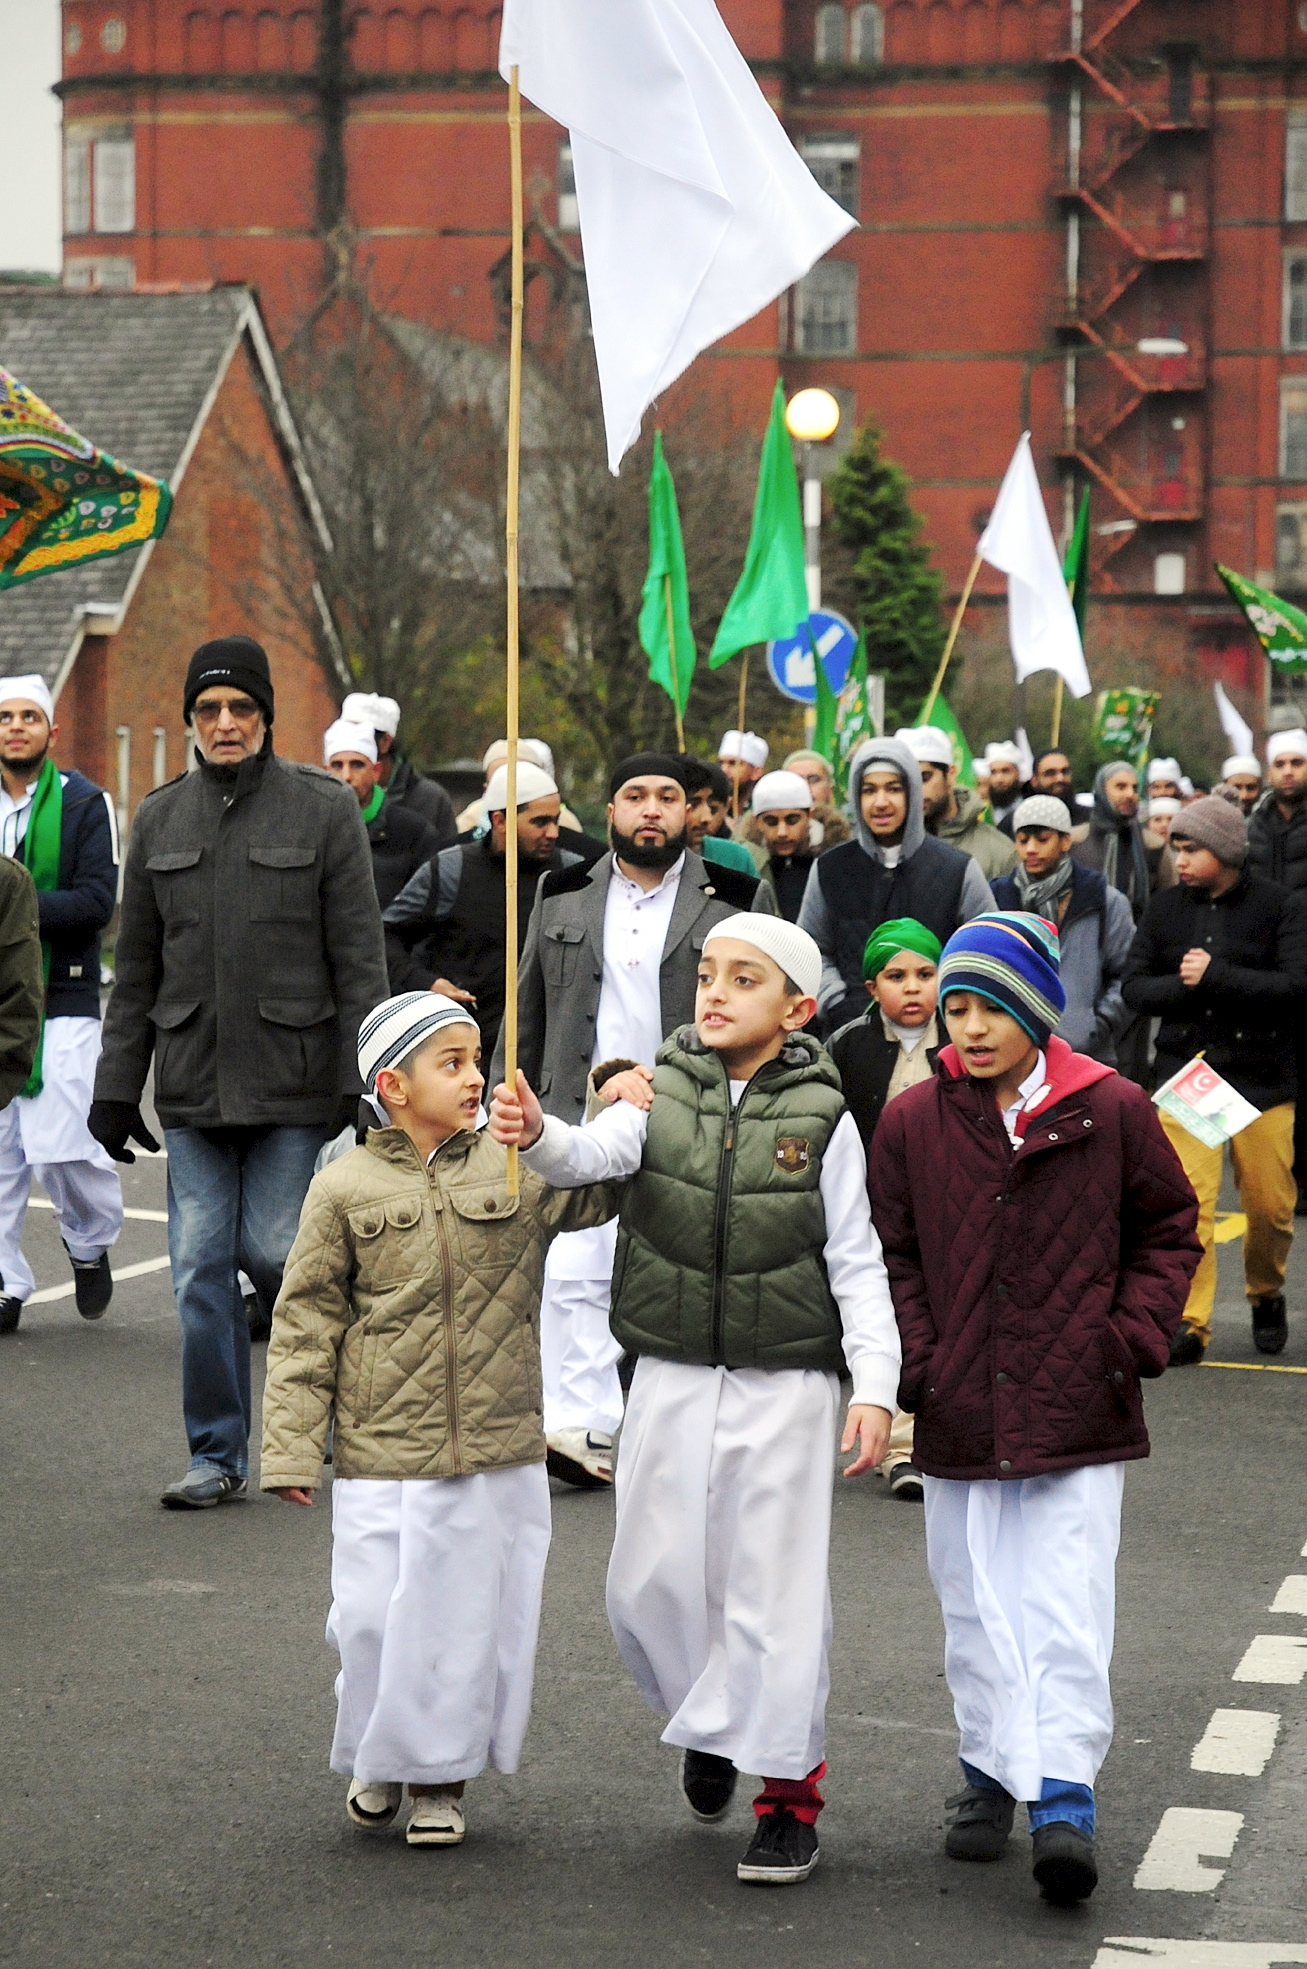 Thousands turn out for Muslim faith walk